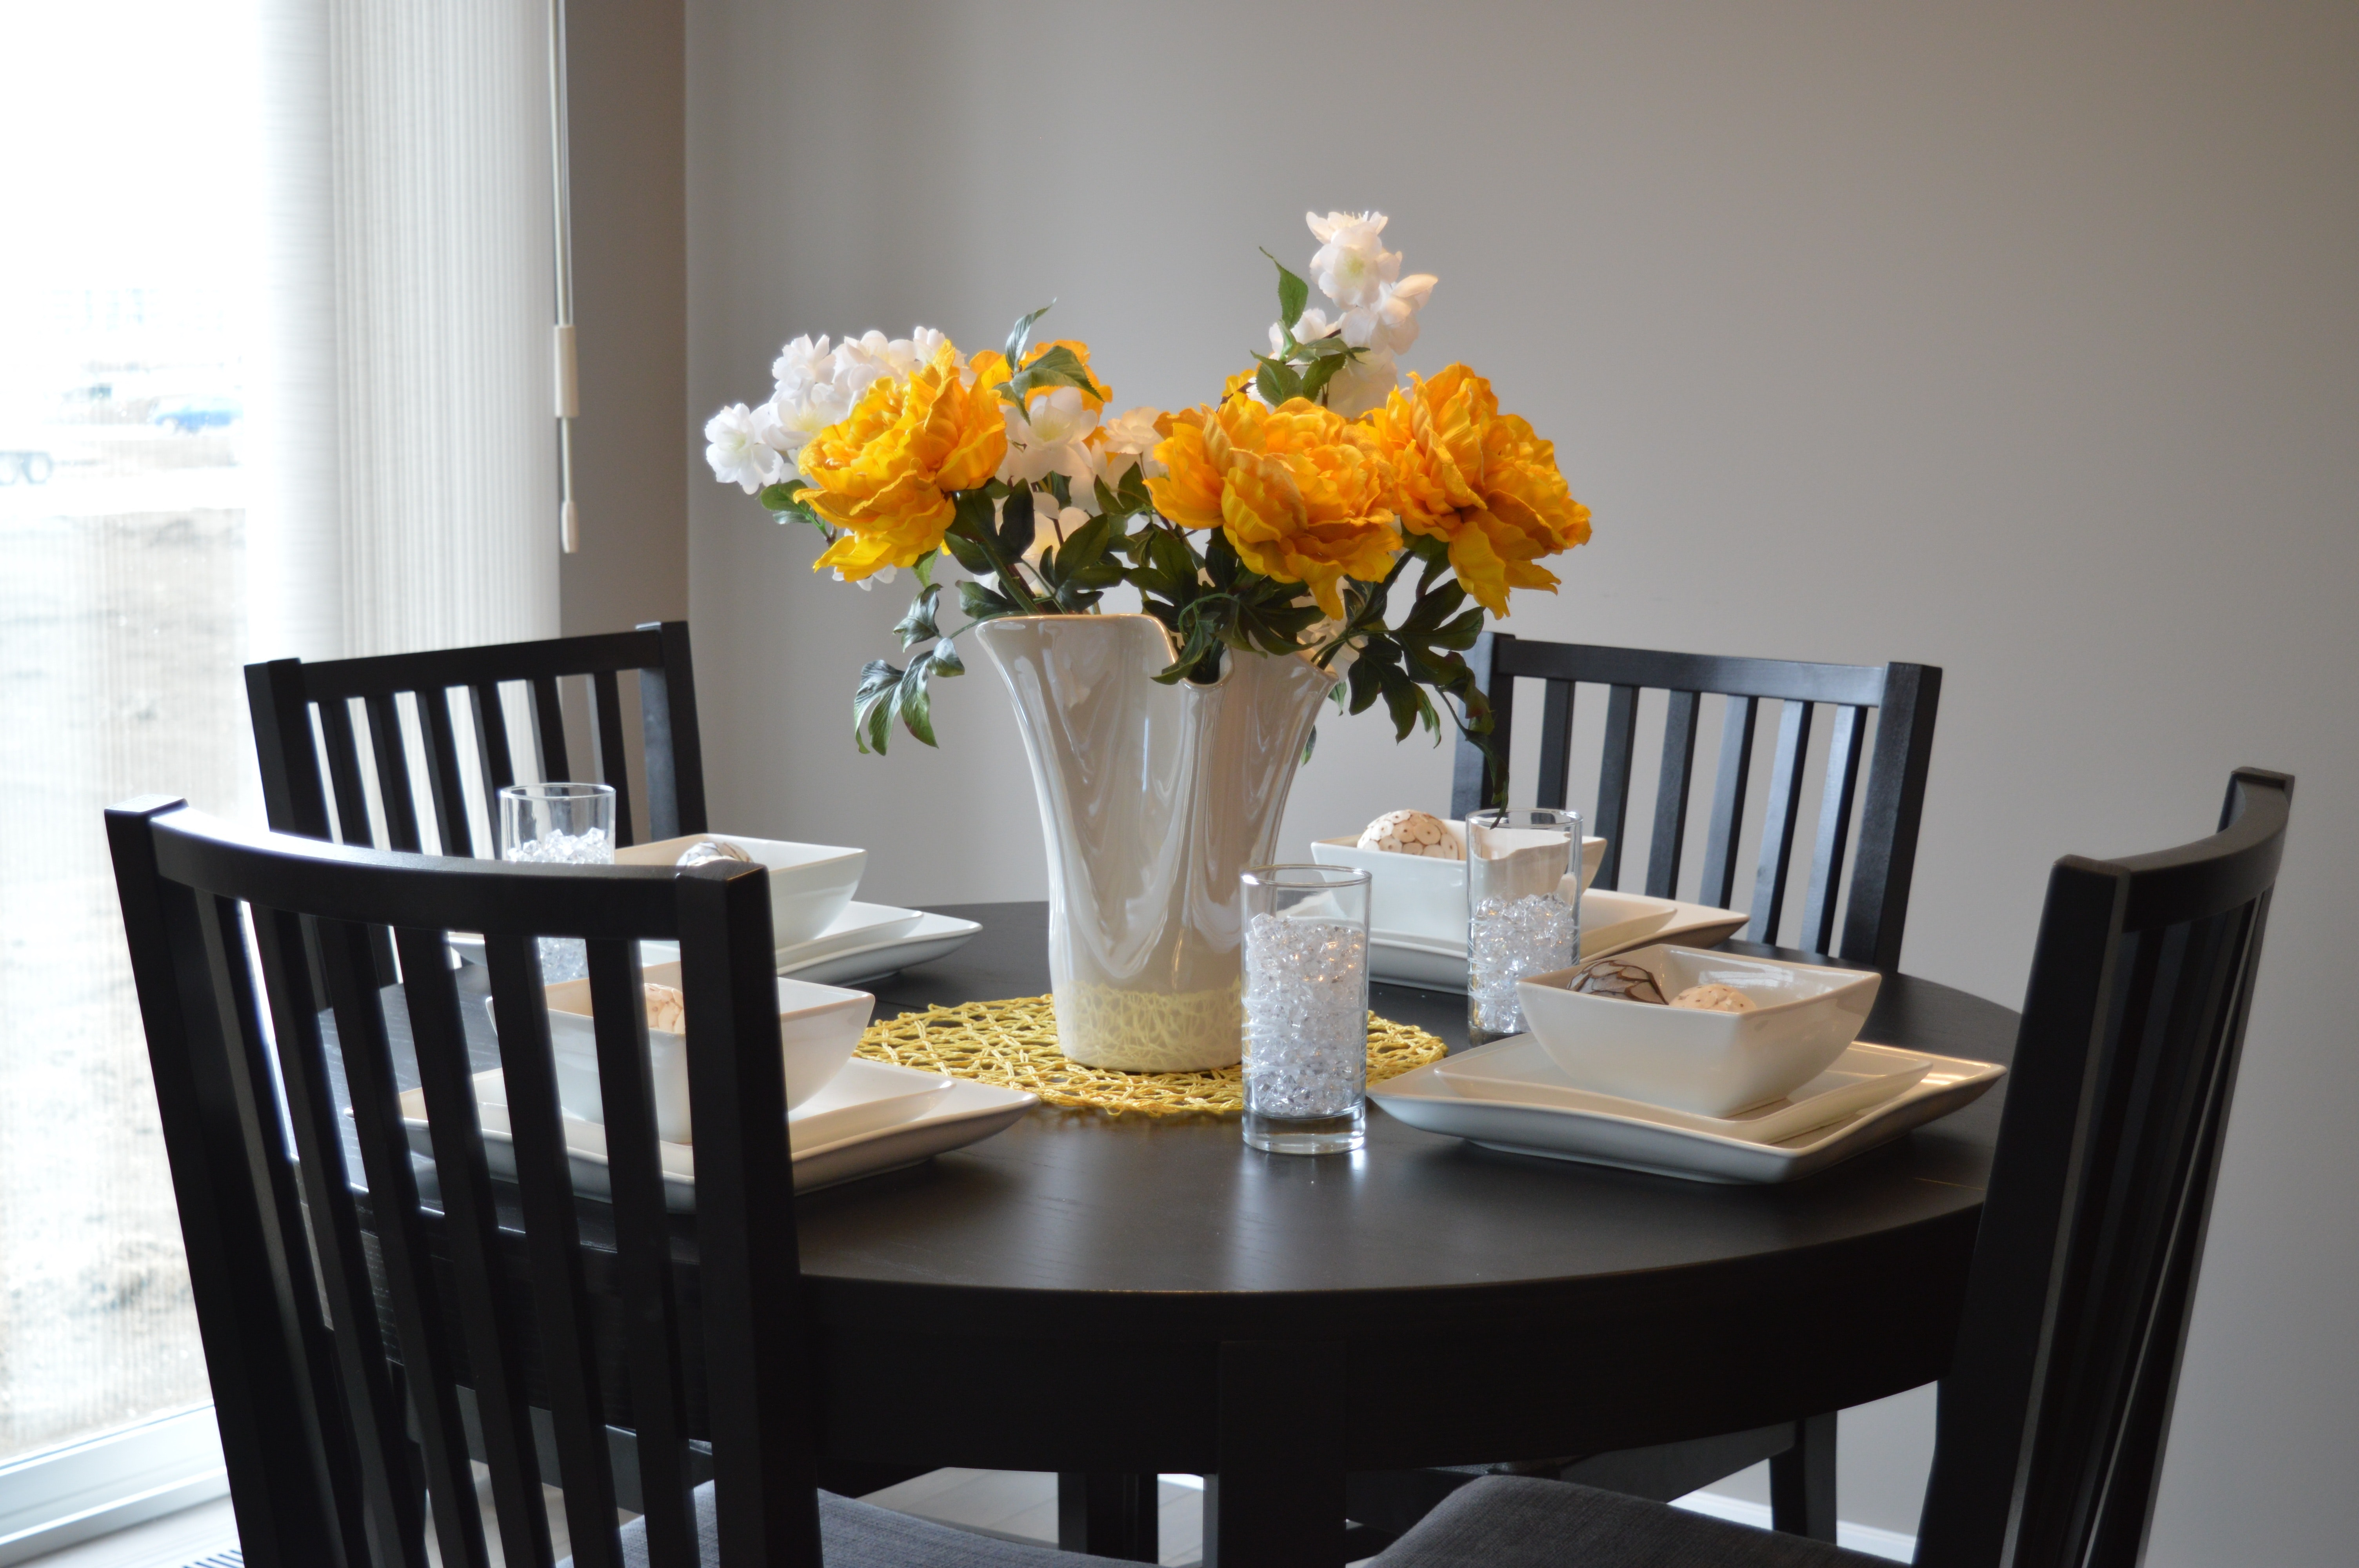 Dining table and chairs featuring flowers and dinner plates